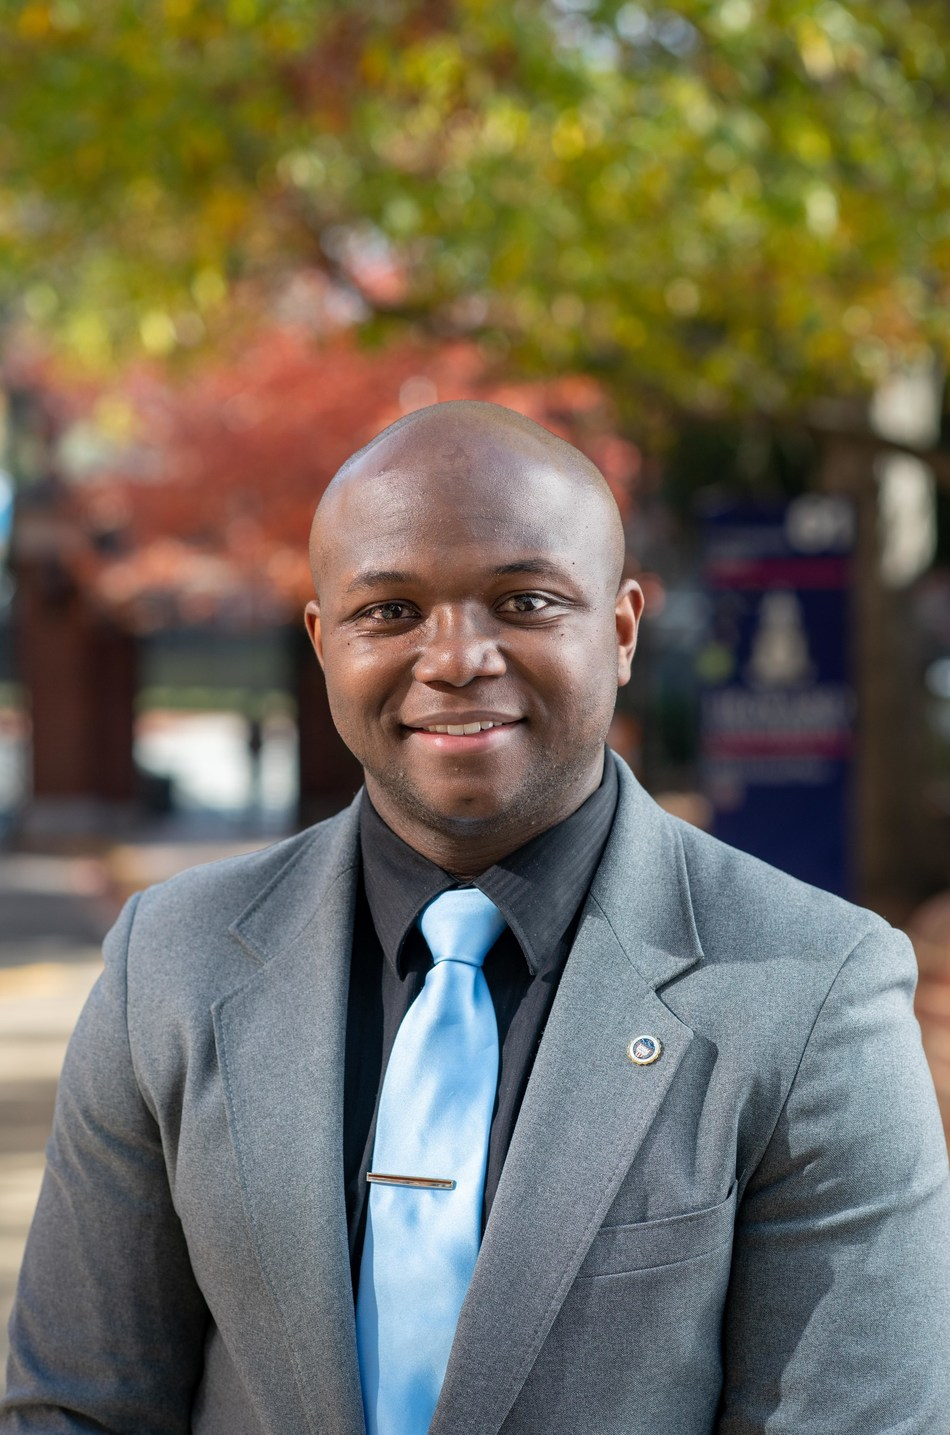 Howard University senior journalism student Virgil Parker will participate in the Charles B. Rangel International Affairs Summer Enrichment Fellowship Program. He is one of 15 fellows appointed following a highly competitive nationwide selection process.